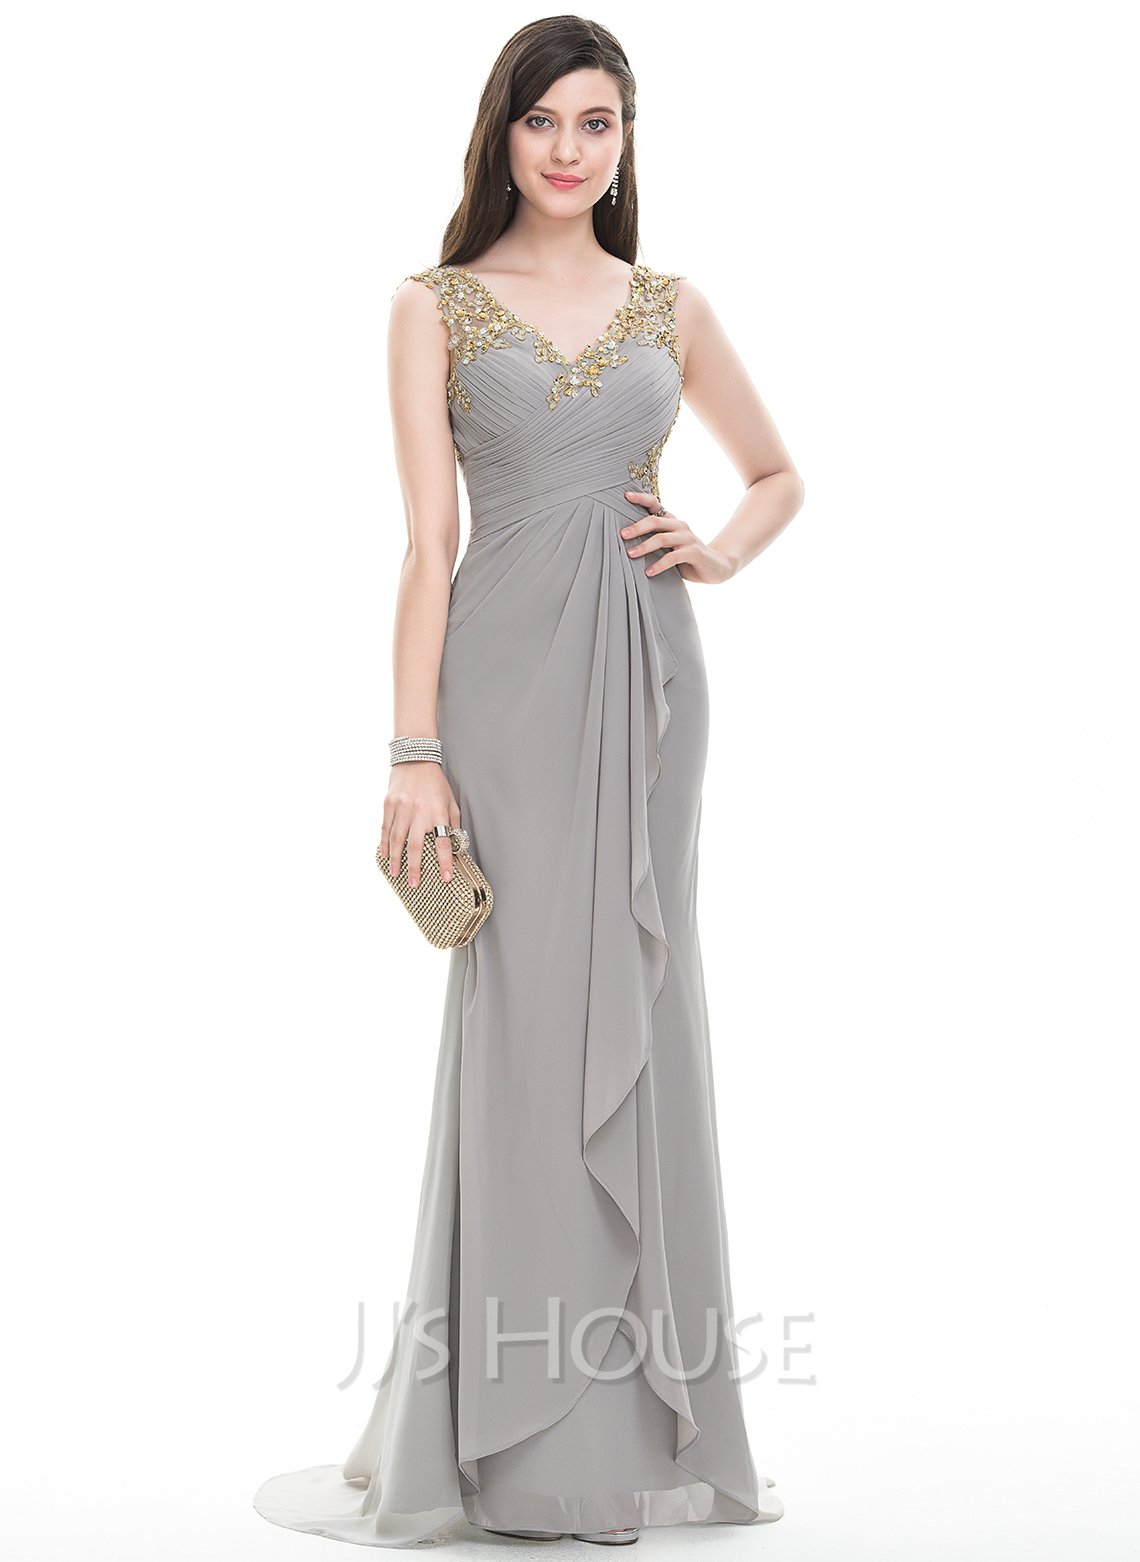 445d0cfd0b9 A-Line Princess V-neck Sweep Train Chiffon Evening Dress With Ruffle  Beading. Loading zoom